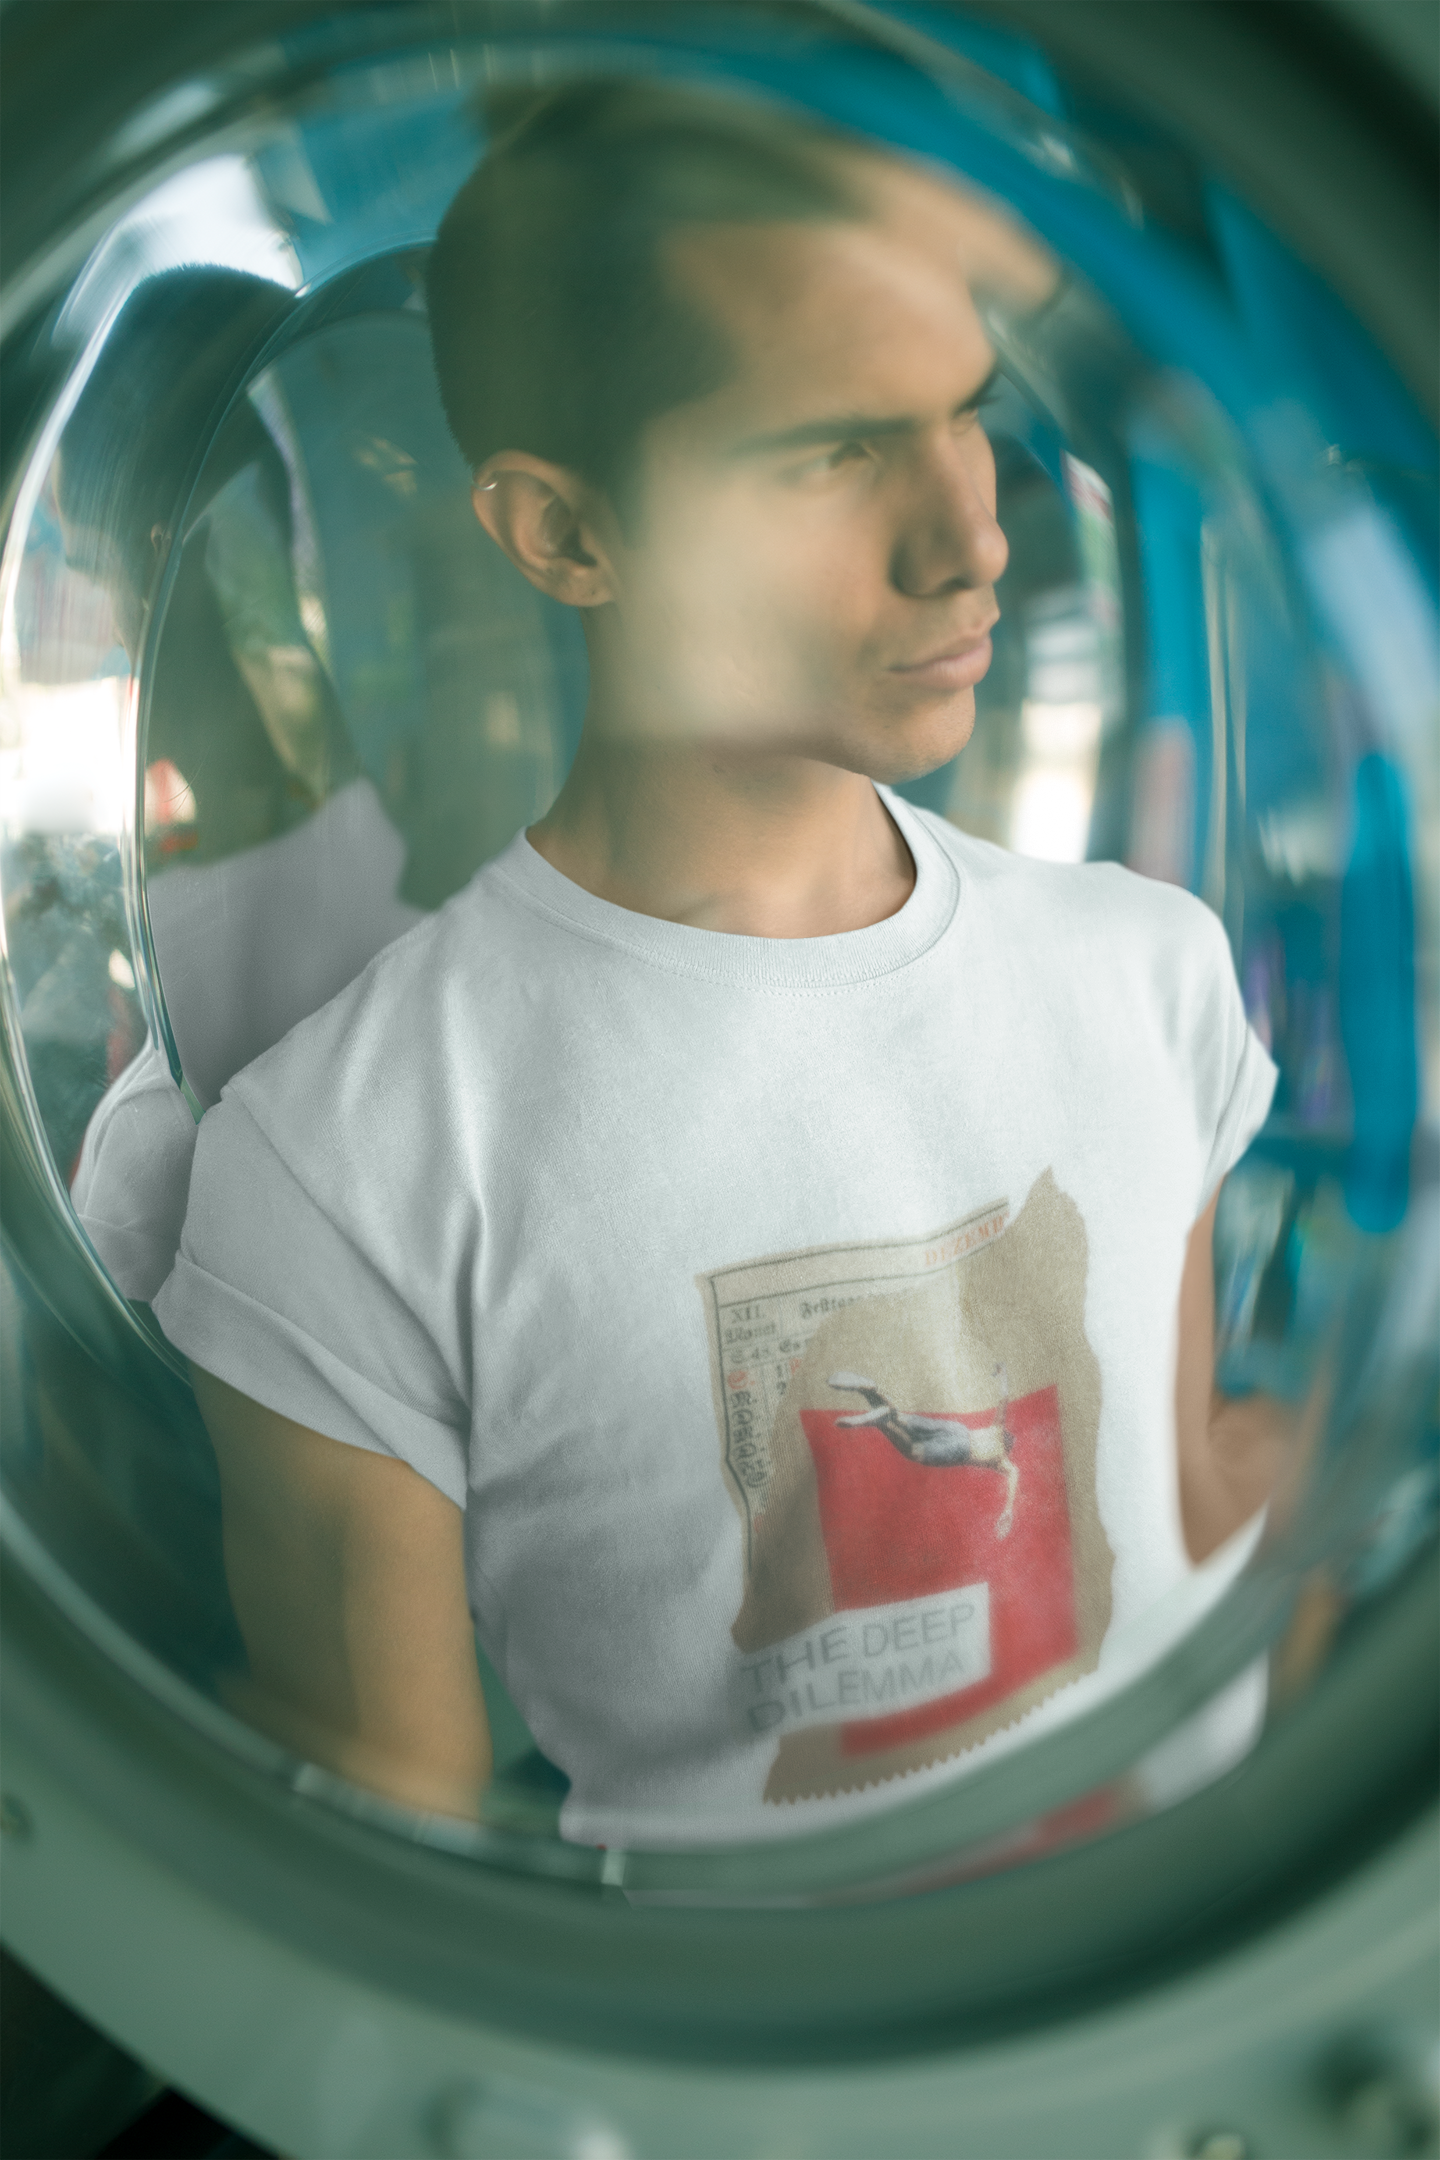 through-a-glass-mockup-of-a-man-wearing-a-t-shirt-at-a-laundry-a19700 (1).png